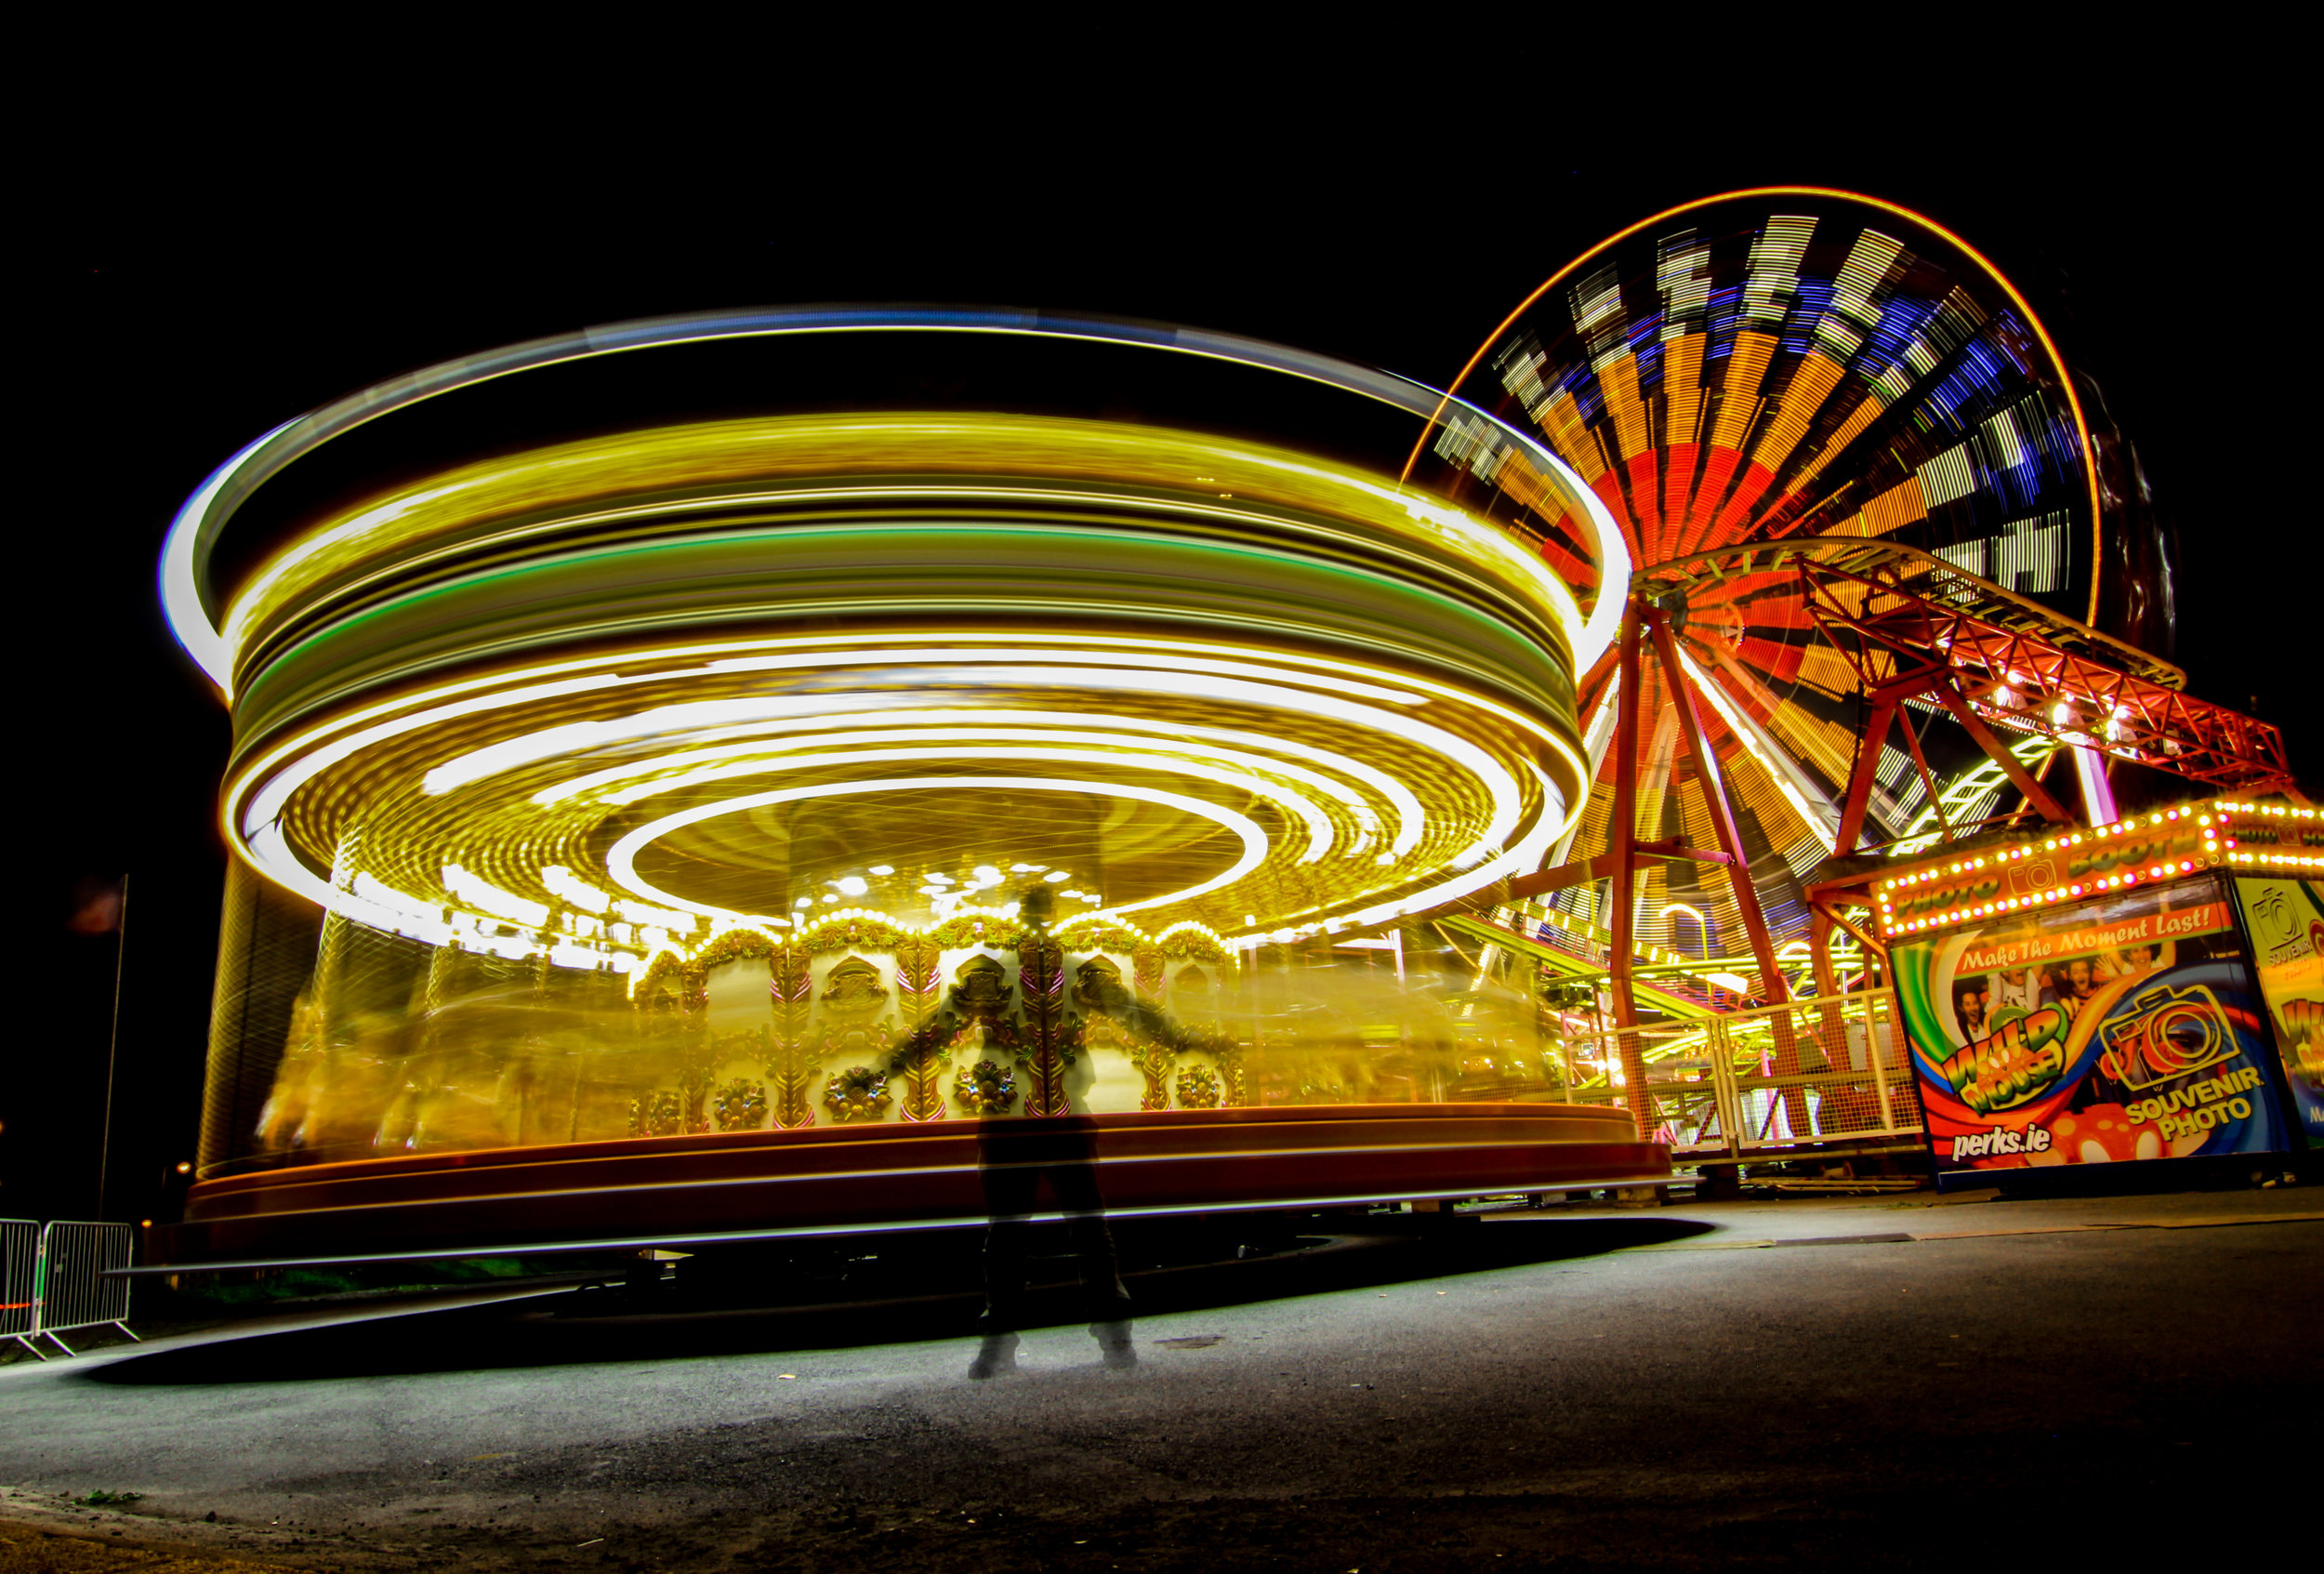 Night Carnival Photography